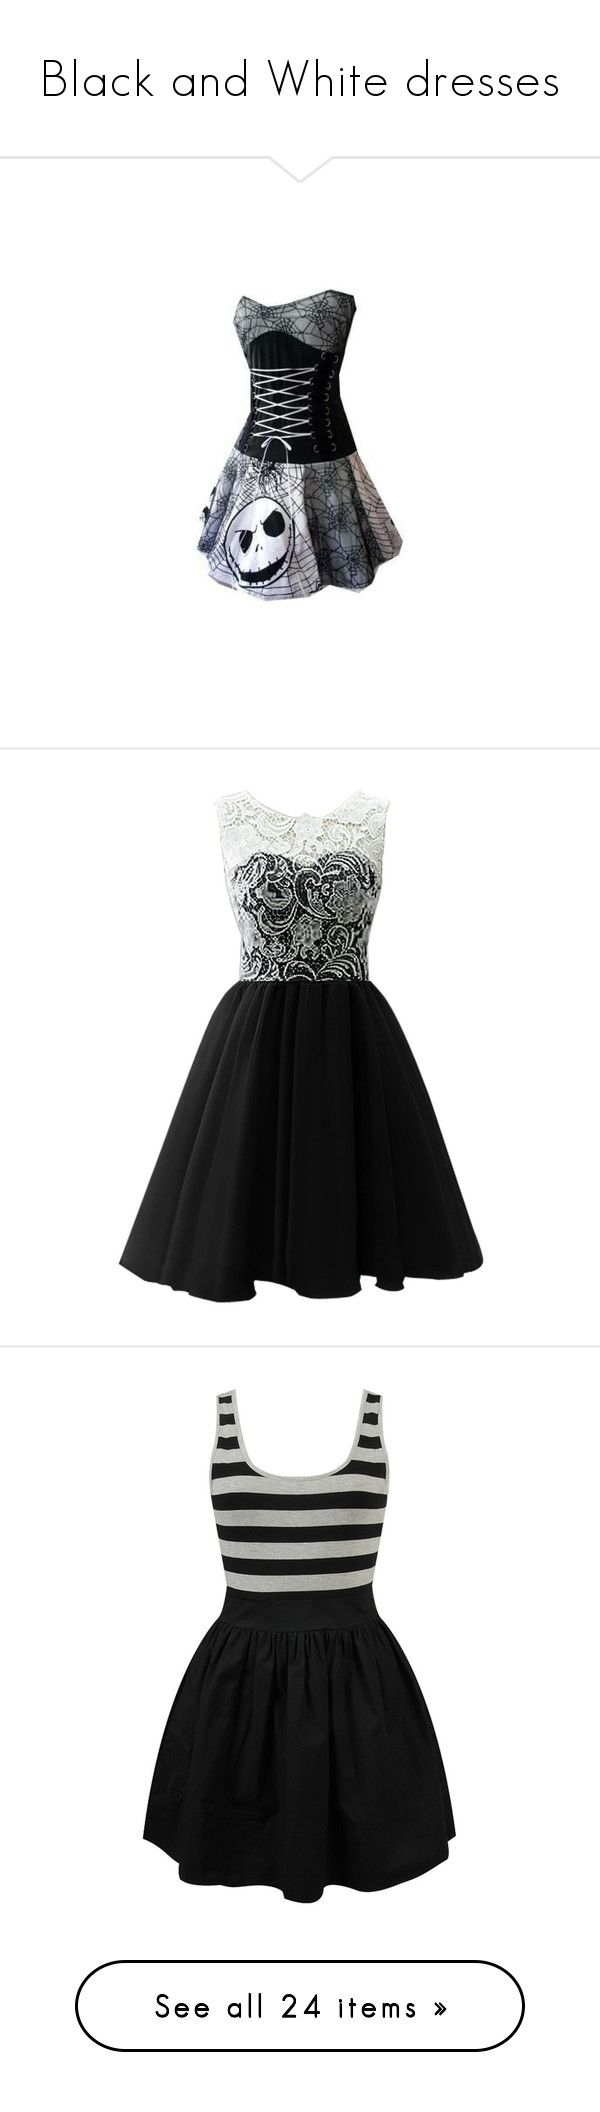 """Black and White dresses"" by greene1250 ❤ liked on Polyvore featuring dresses, vestidos, short dresses, black, lace cocktail dress, bridesmaid dresses, short homecoming dresses, prom dresses, casual and nautical striped dress"